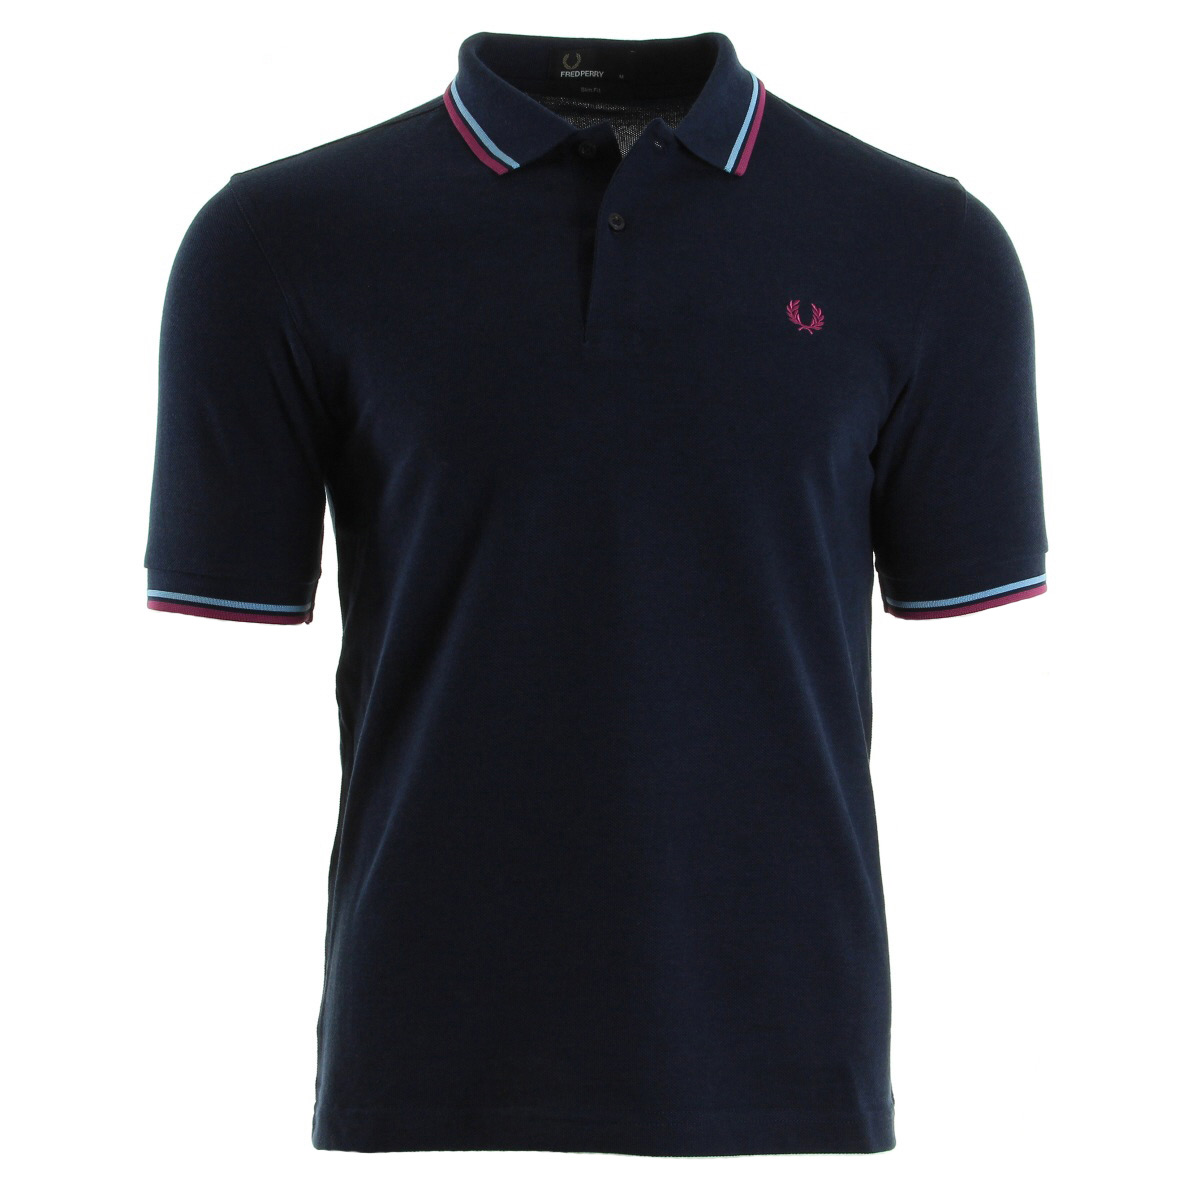 v tement polo fred perry homme twin tipped shirt taille bleu coton manches ebay. Black Bedroom Furniture Sets. Home Design Ideas